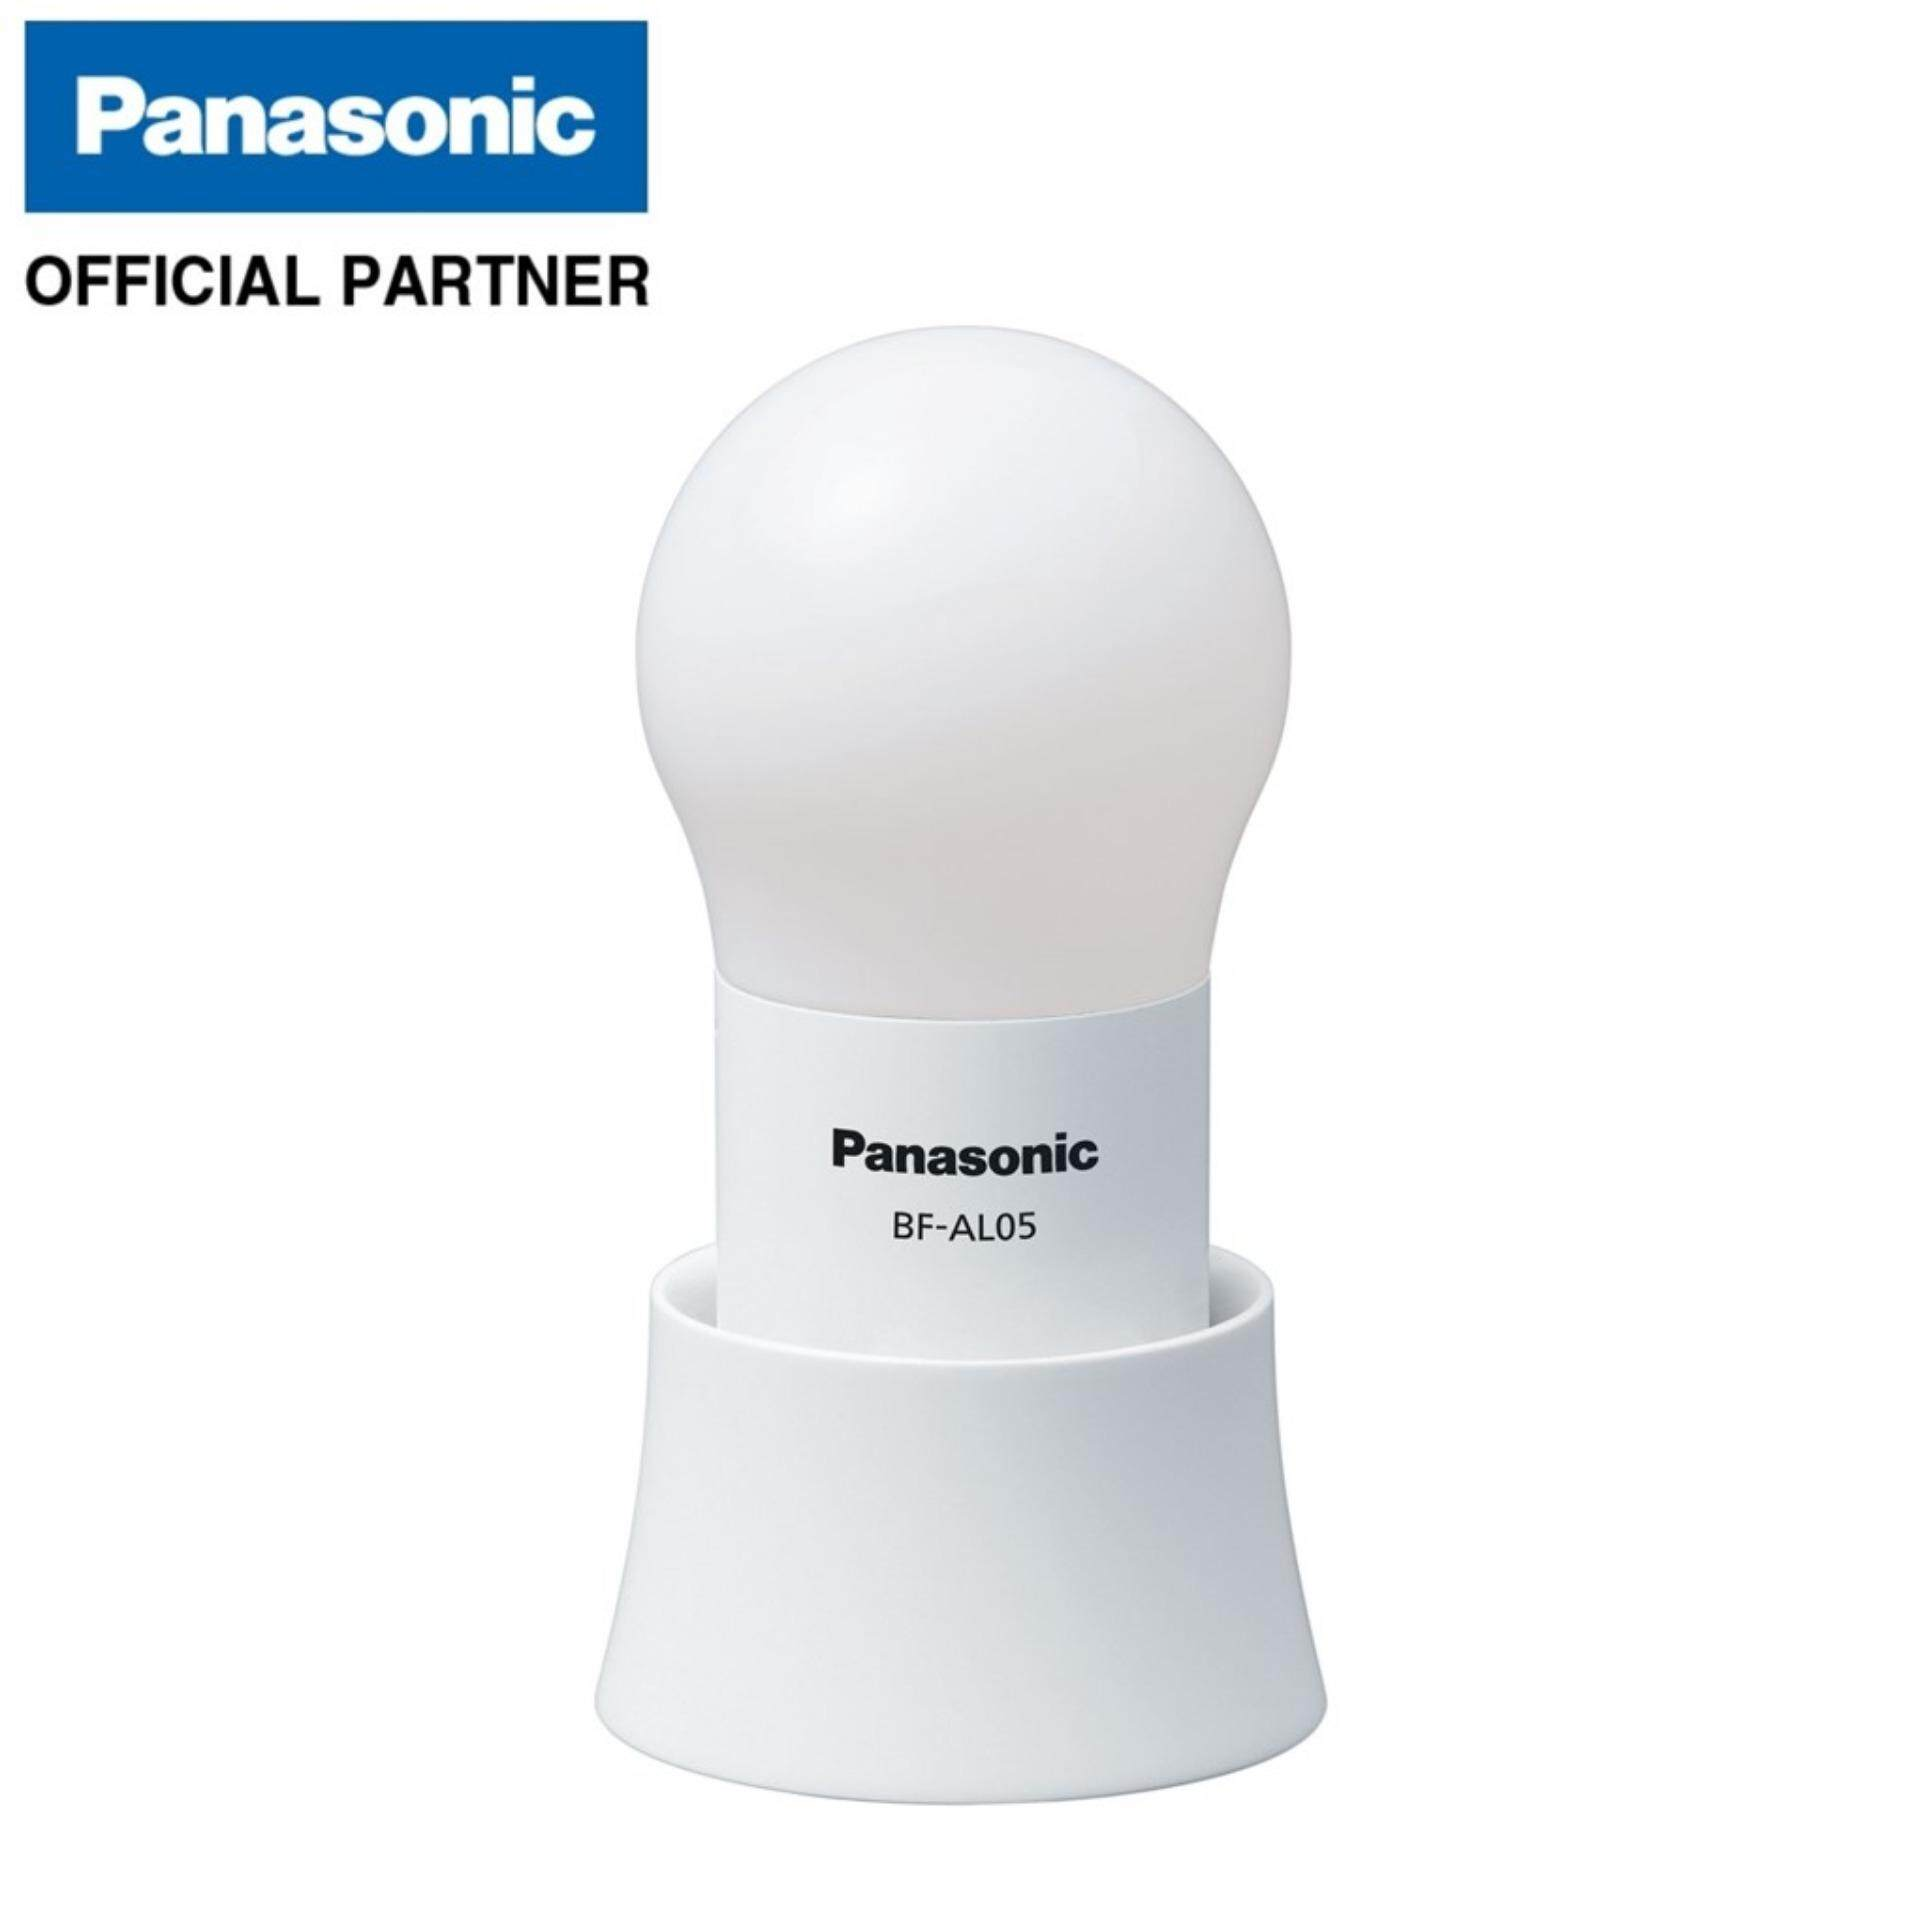 Panasonic One-Touch Led Round Lantern For Baby Room By Panasonic Authorized Partners - Energy.